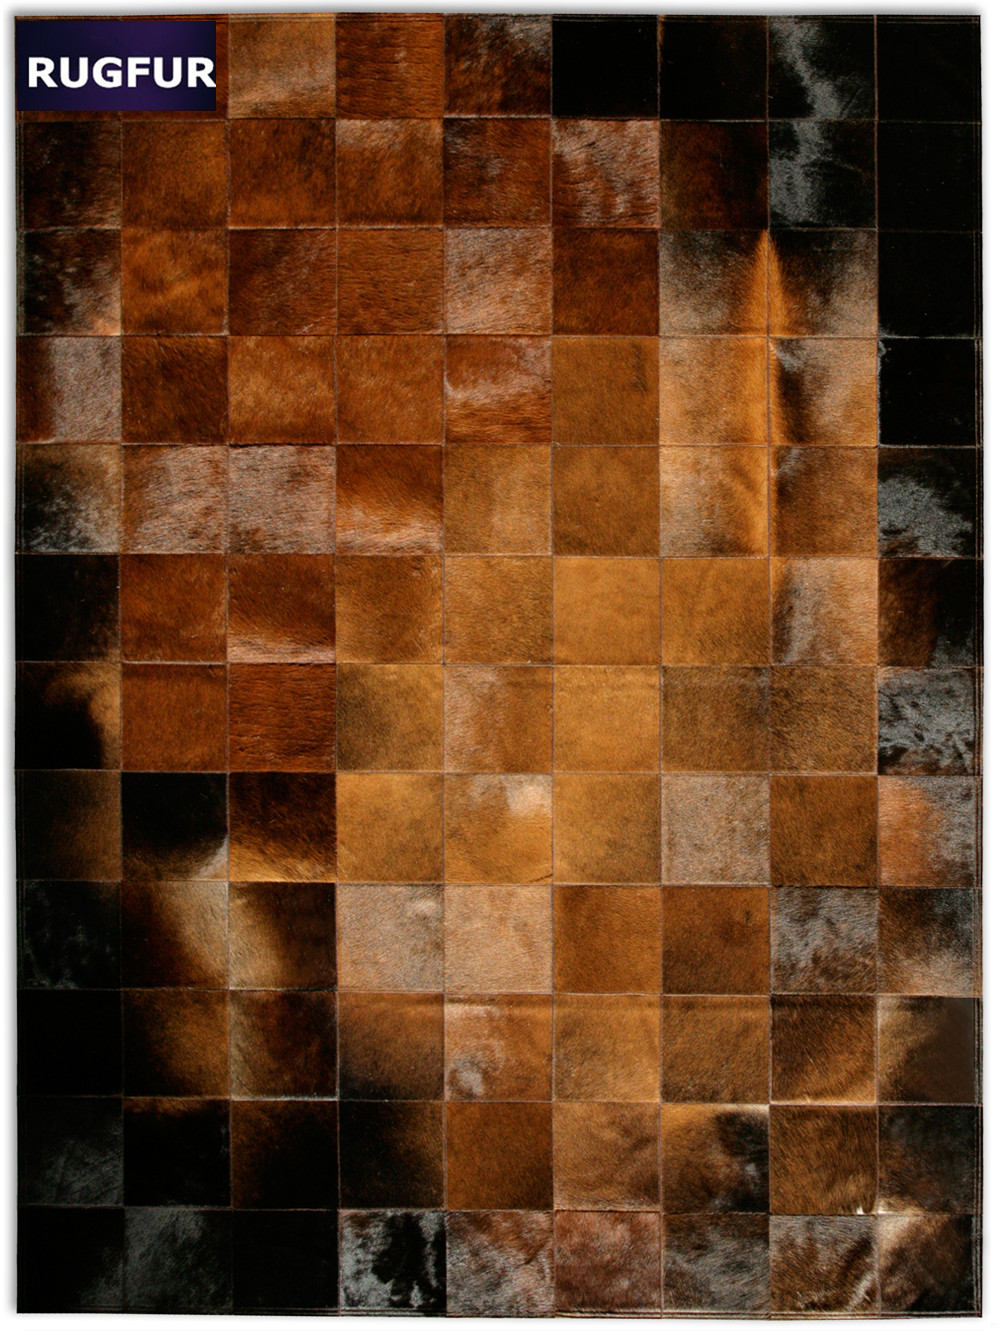 cowhide rugs modern leather carpets area rugs fur homechina